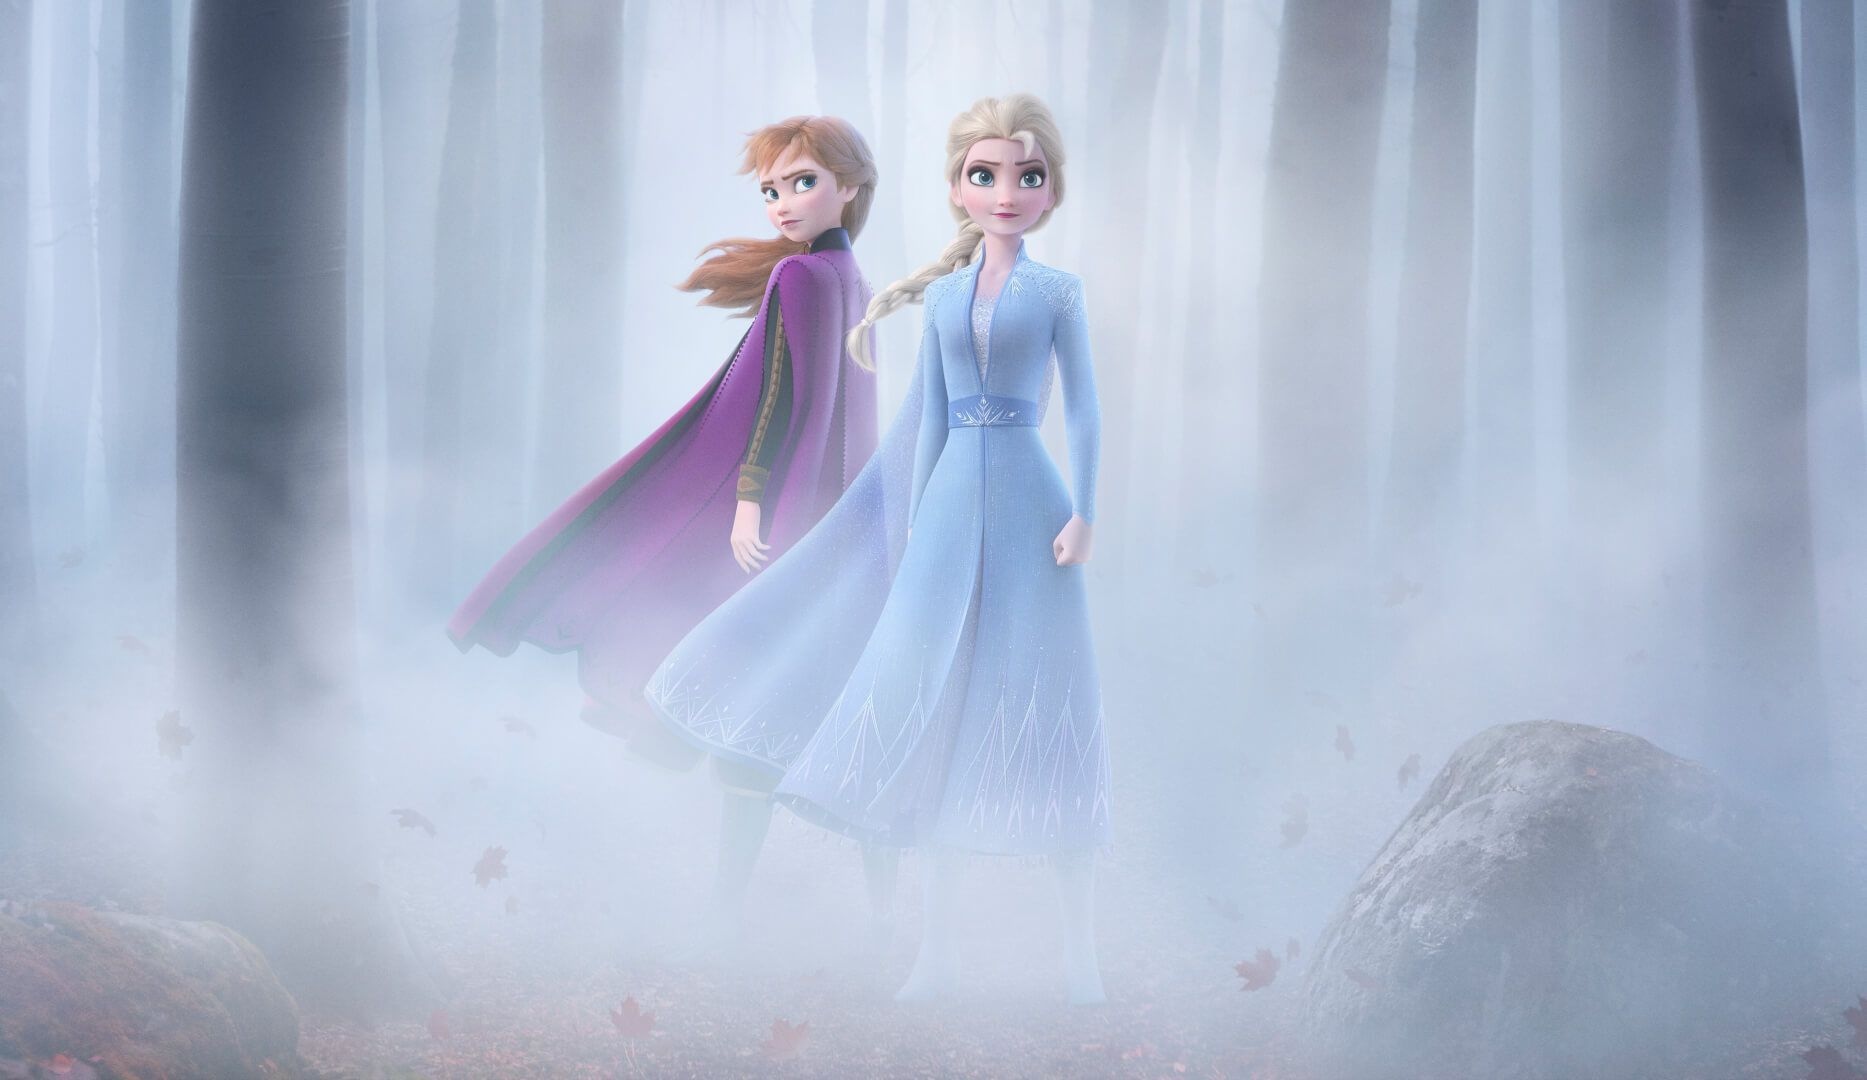 Elsa Sets Out To Find Source Of Her Powers In New Frozen 2 Trailer Inside The Magic Film La Reine Des Neiges Reine Des Neiges Chanson La Reine Des Neiges